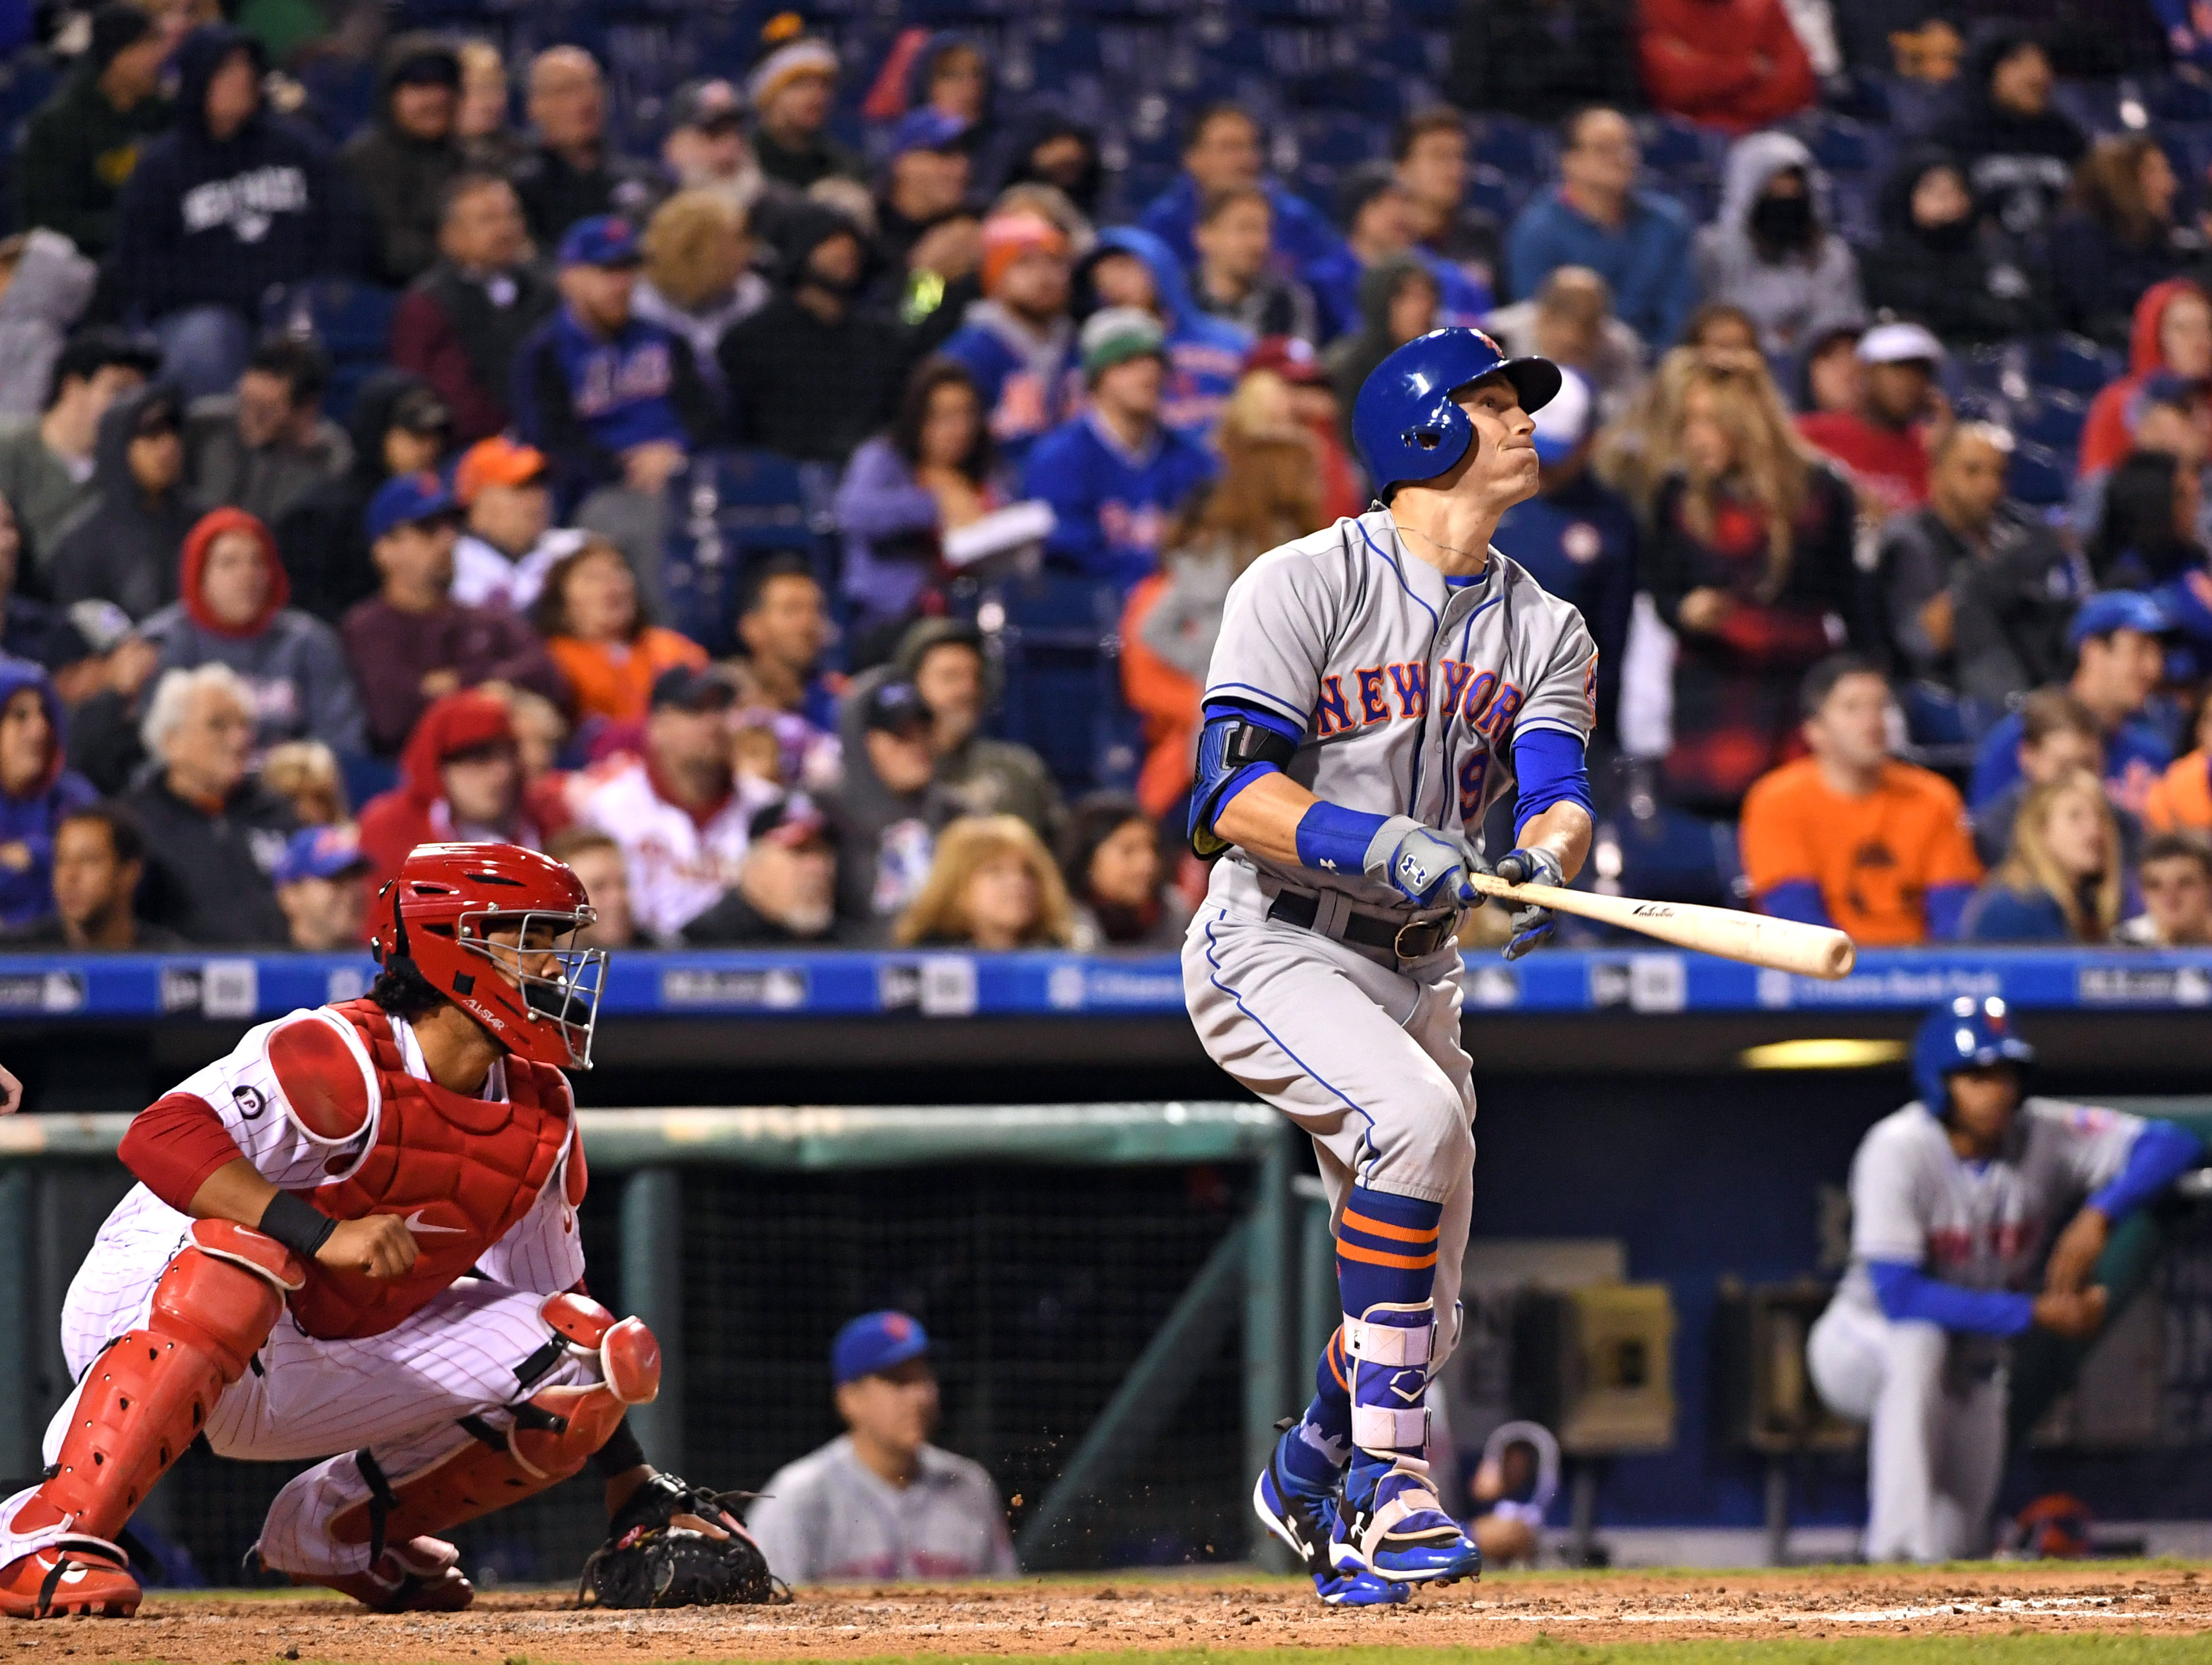 Here's A Look at What The New York Mets' Opening Day Lineup Could Look Like